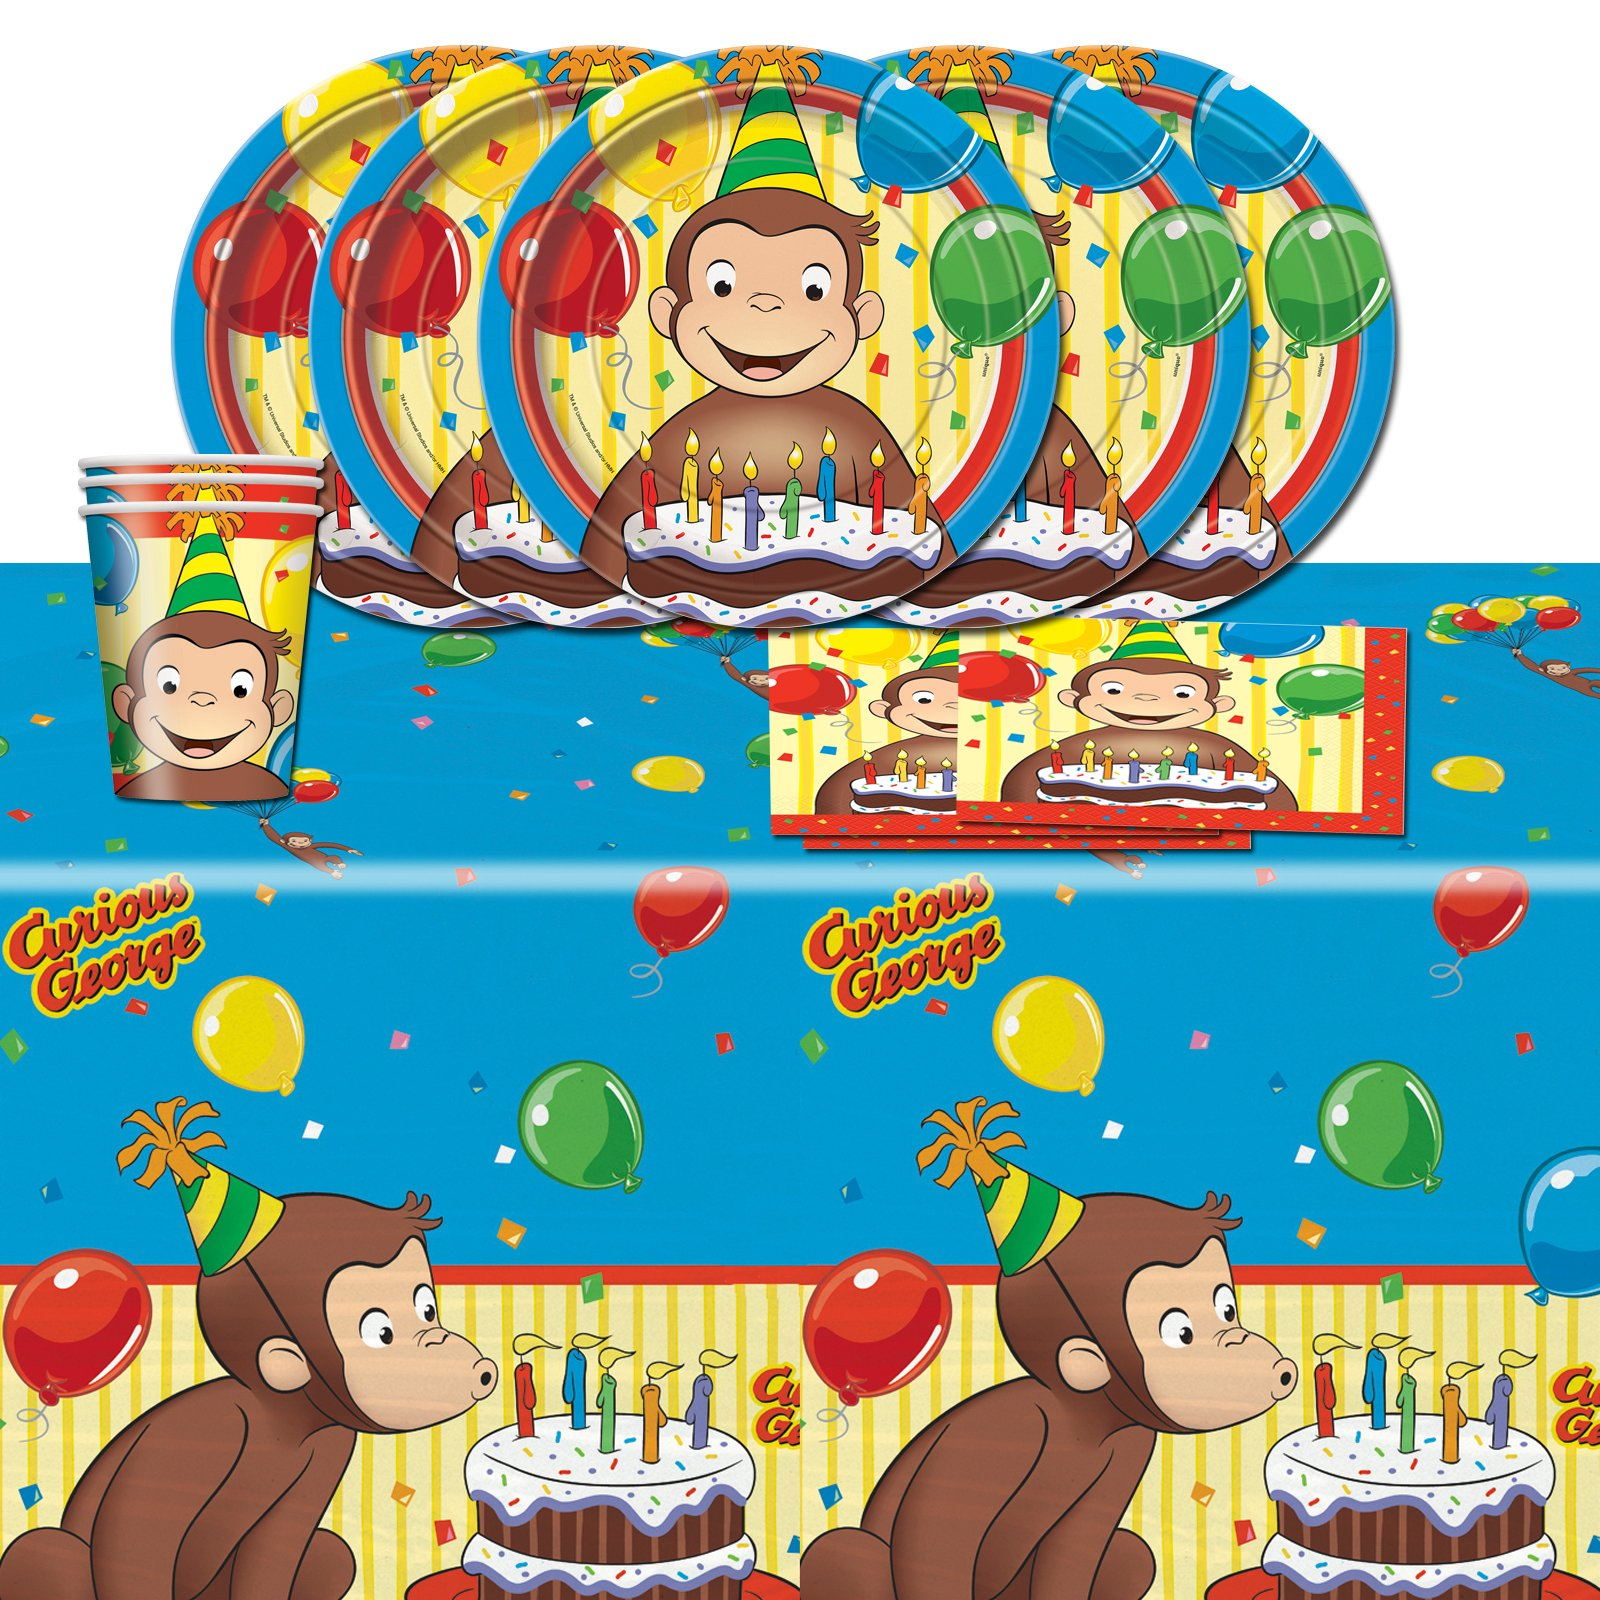 Curious George Personalized Edible Cake Topper Image 1 4 Sheet